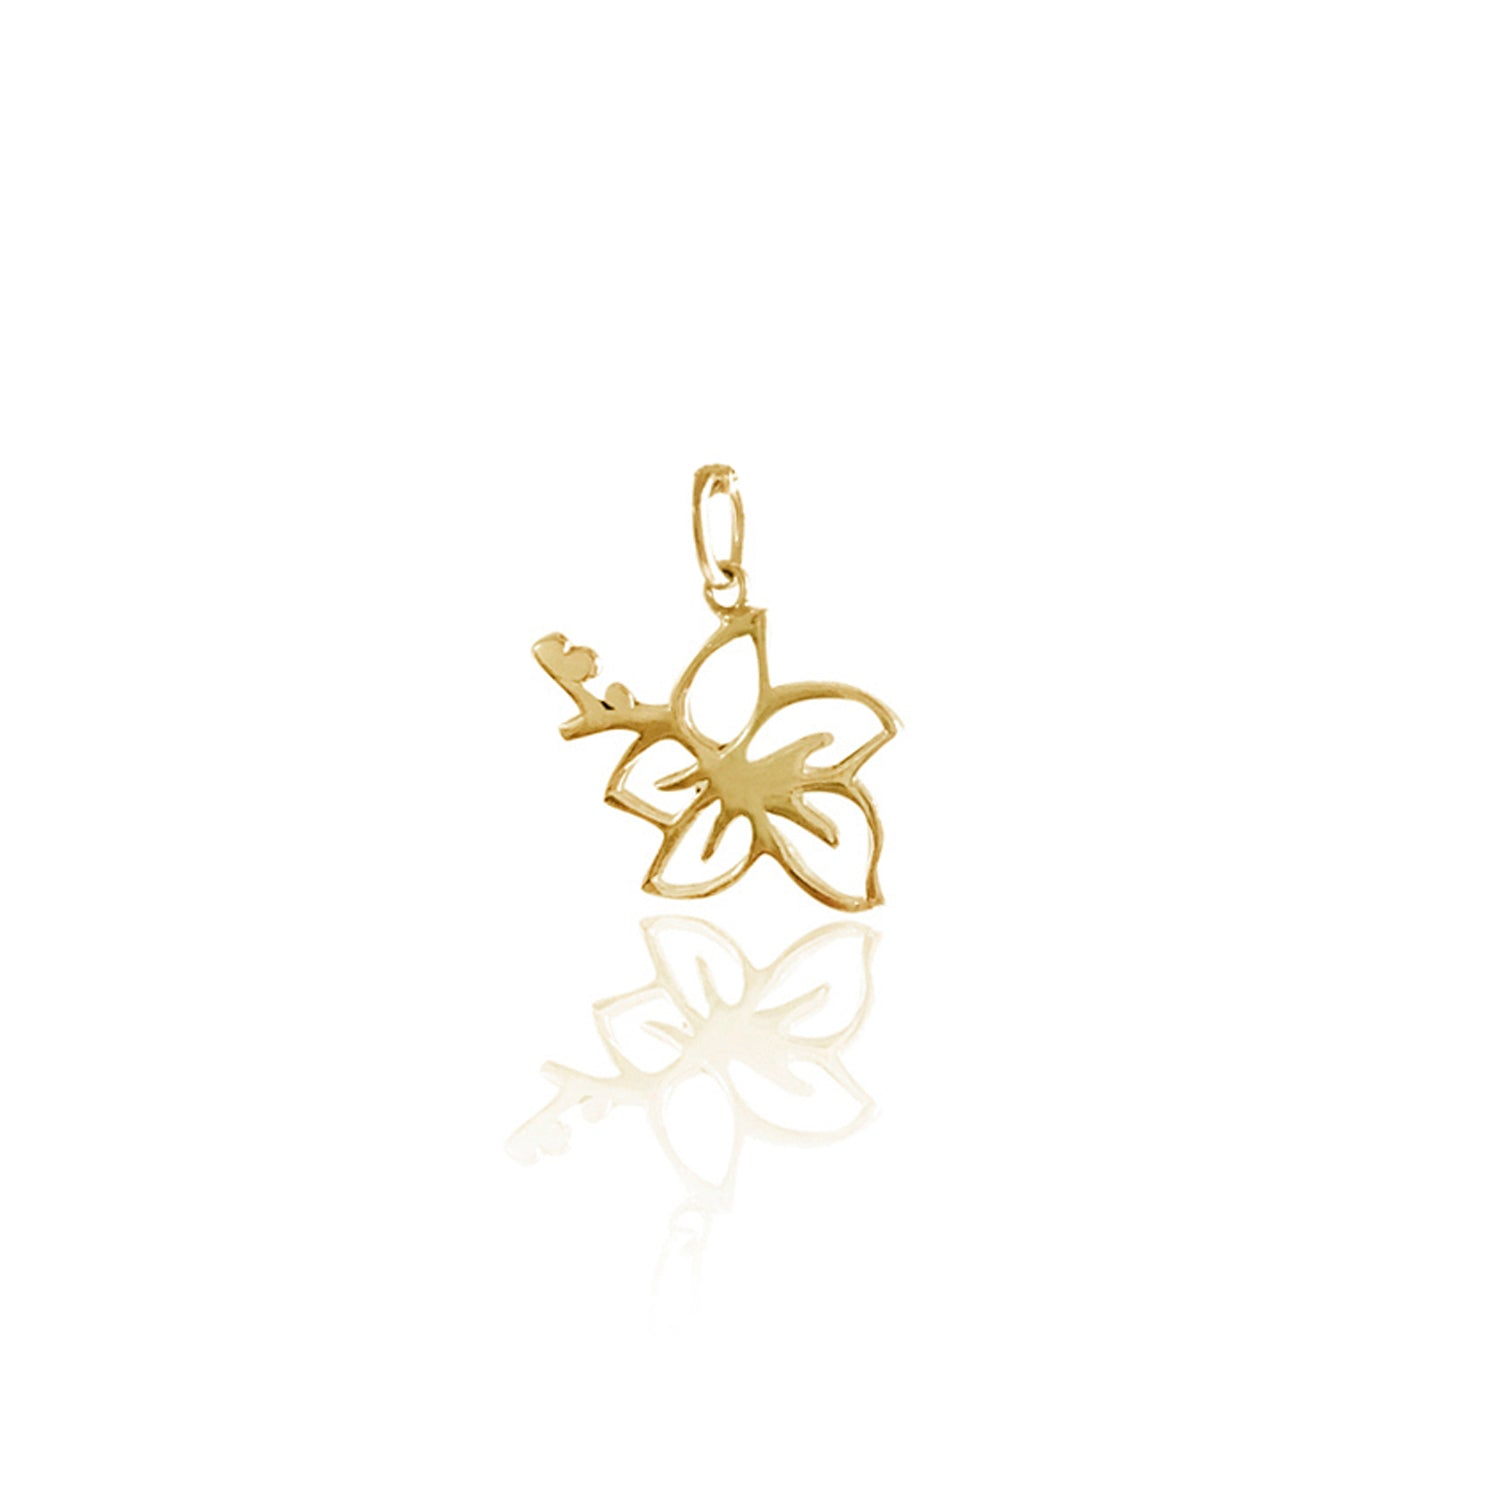 GOLDFISH KISS x LUNA & ROSE HIBISCUS FLOWER CHARM (Gold)